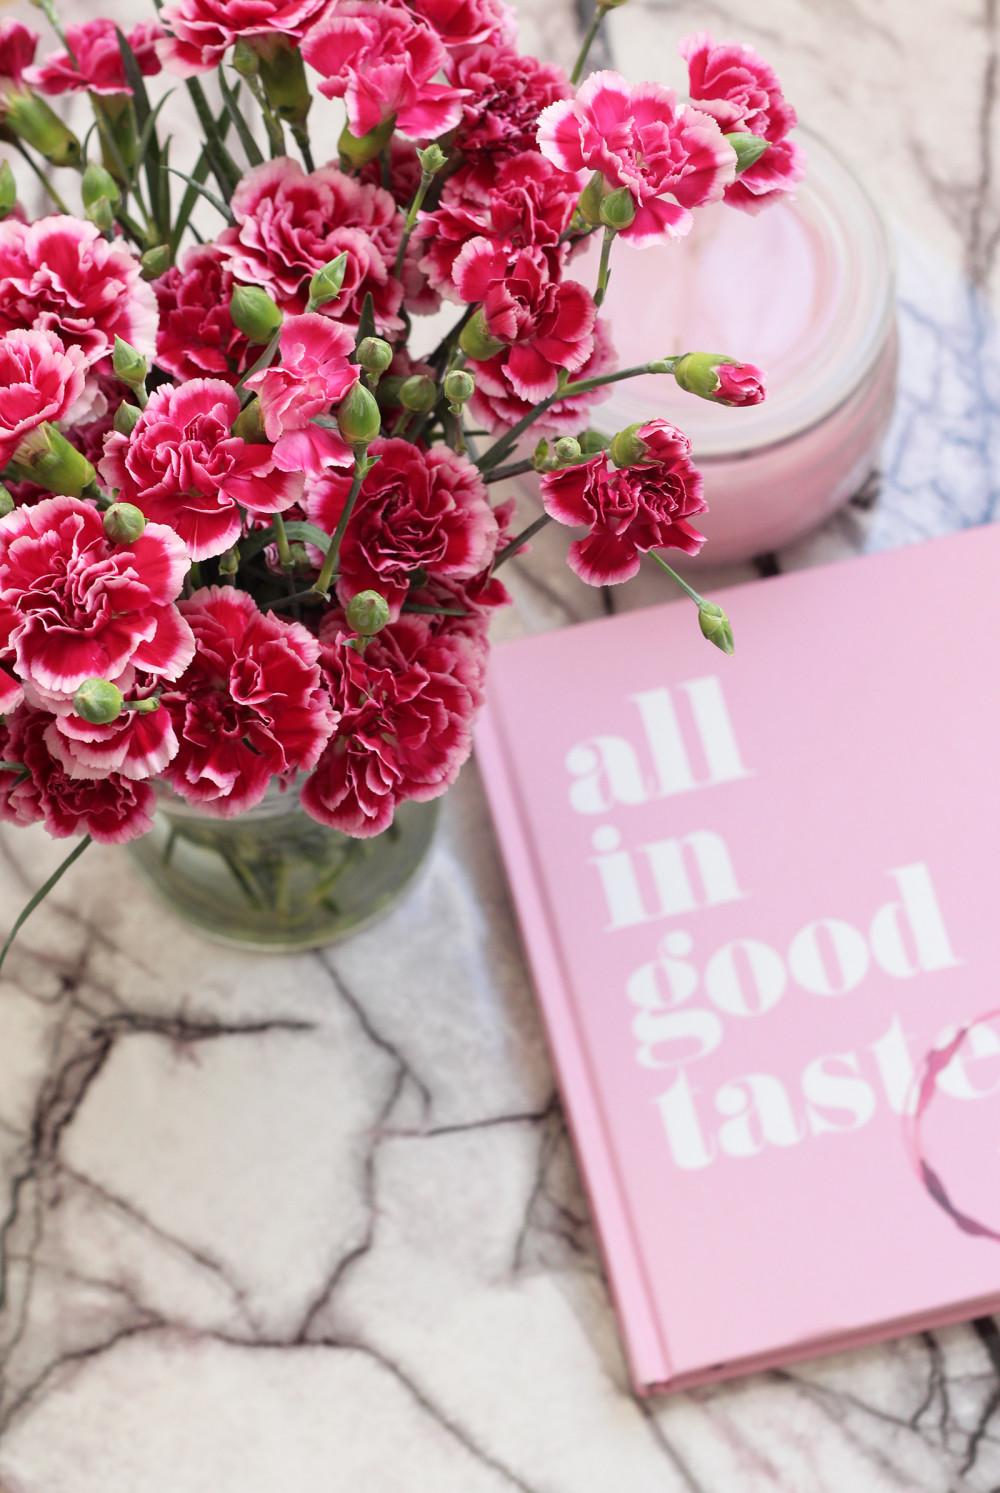 friday flowers and kate spade about a closet 2